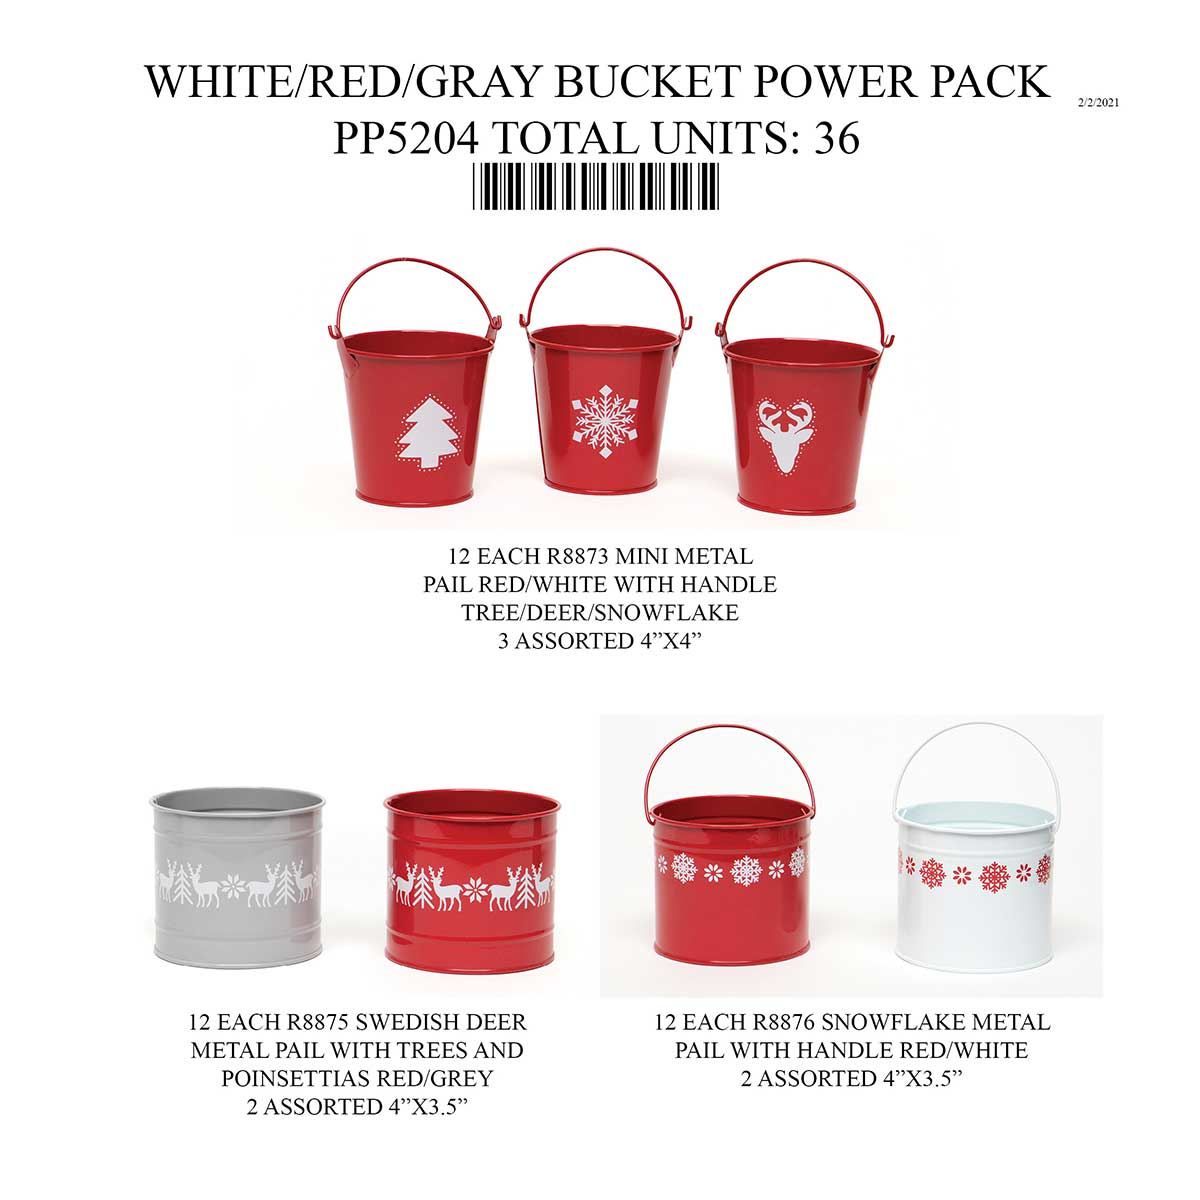 SWEDISH BUCKET WHITE/RED/GREY POWER PACK 36 UNITS PP5204